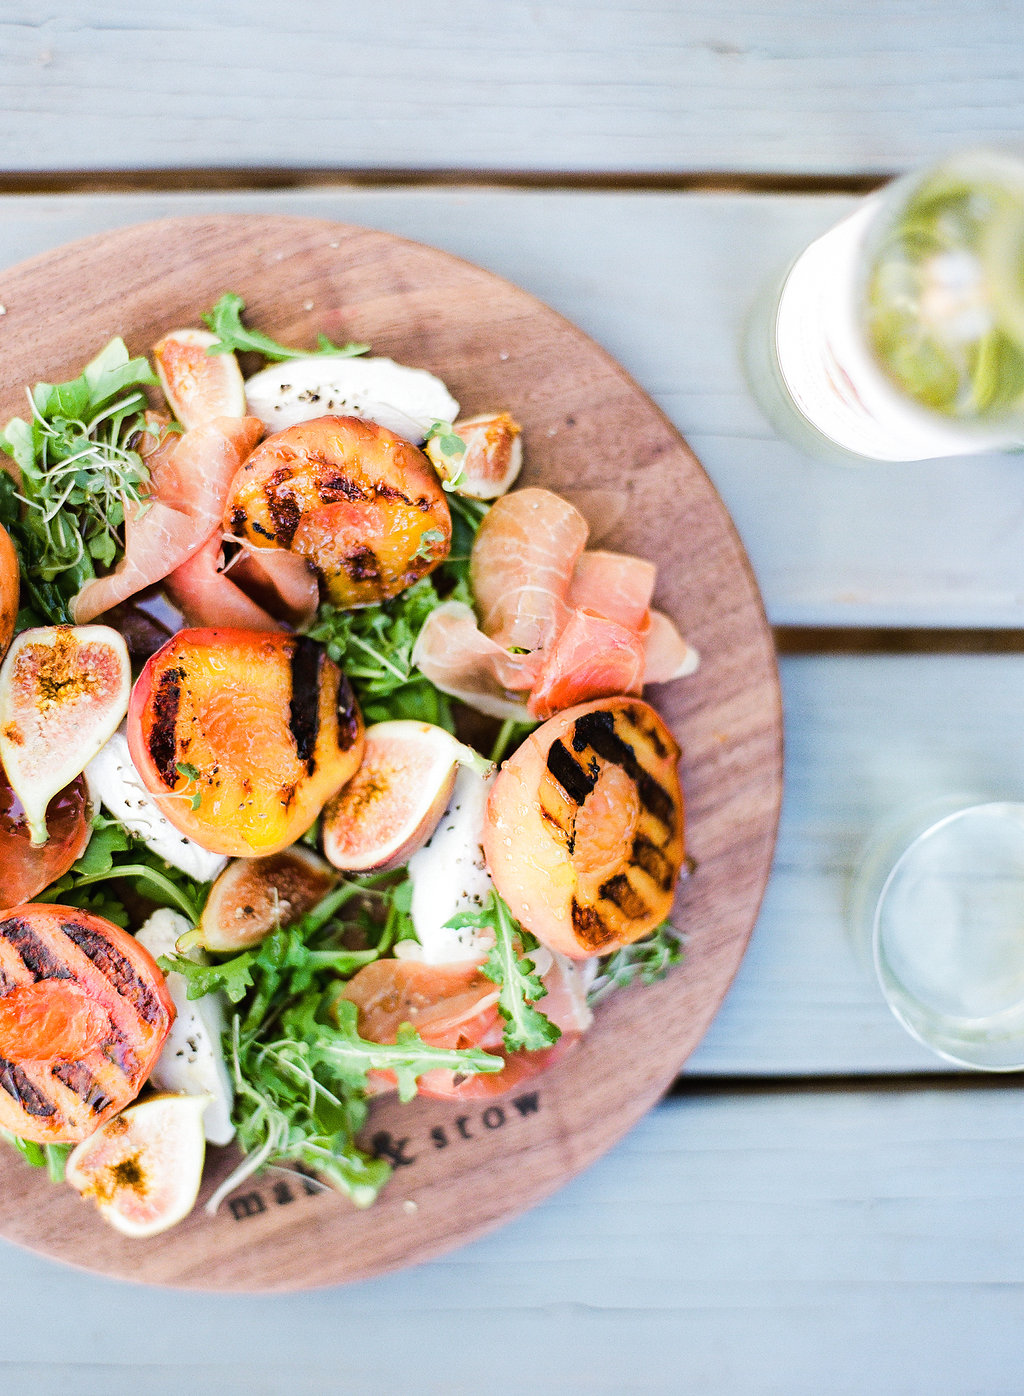 This Grilled Peach & Prosciutto Salad has that summertime citrus we all crave, it's hearty enough to satisfy even the most staunch salad nay sayers, and it's just about the perfect dish for any occasion - specifically a backyard bash!